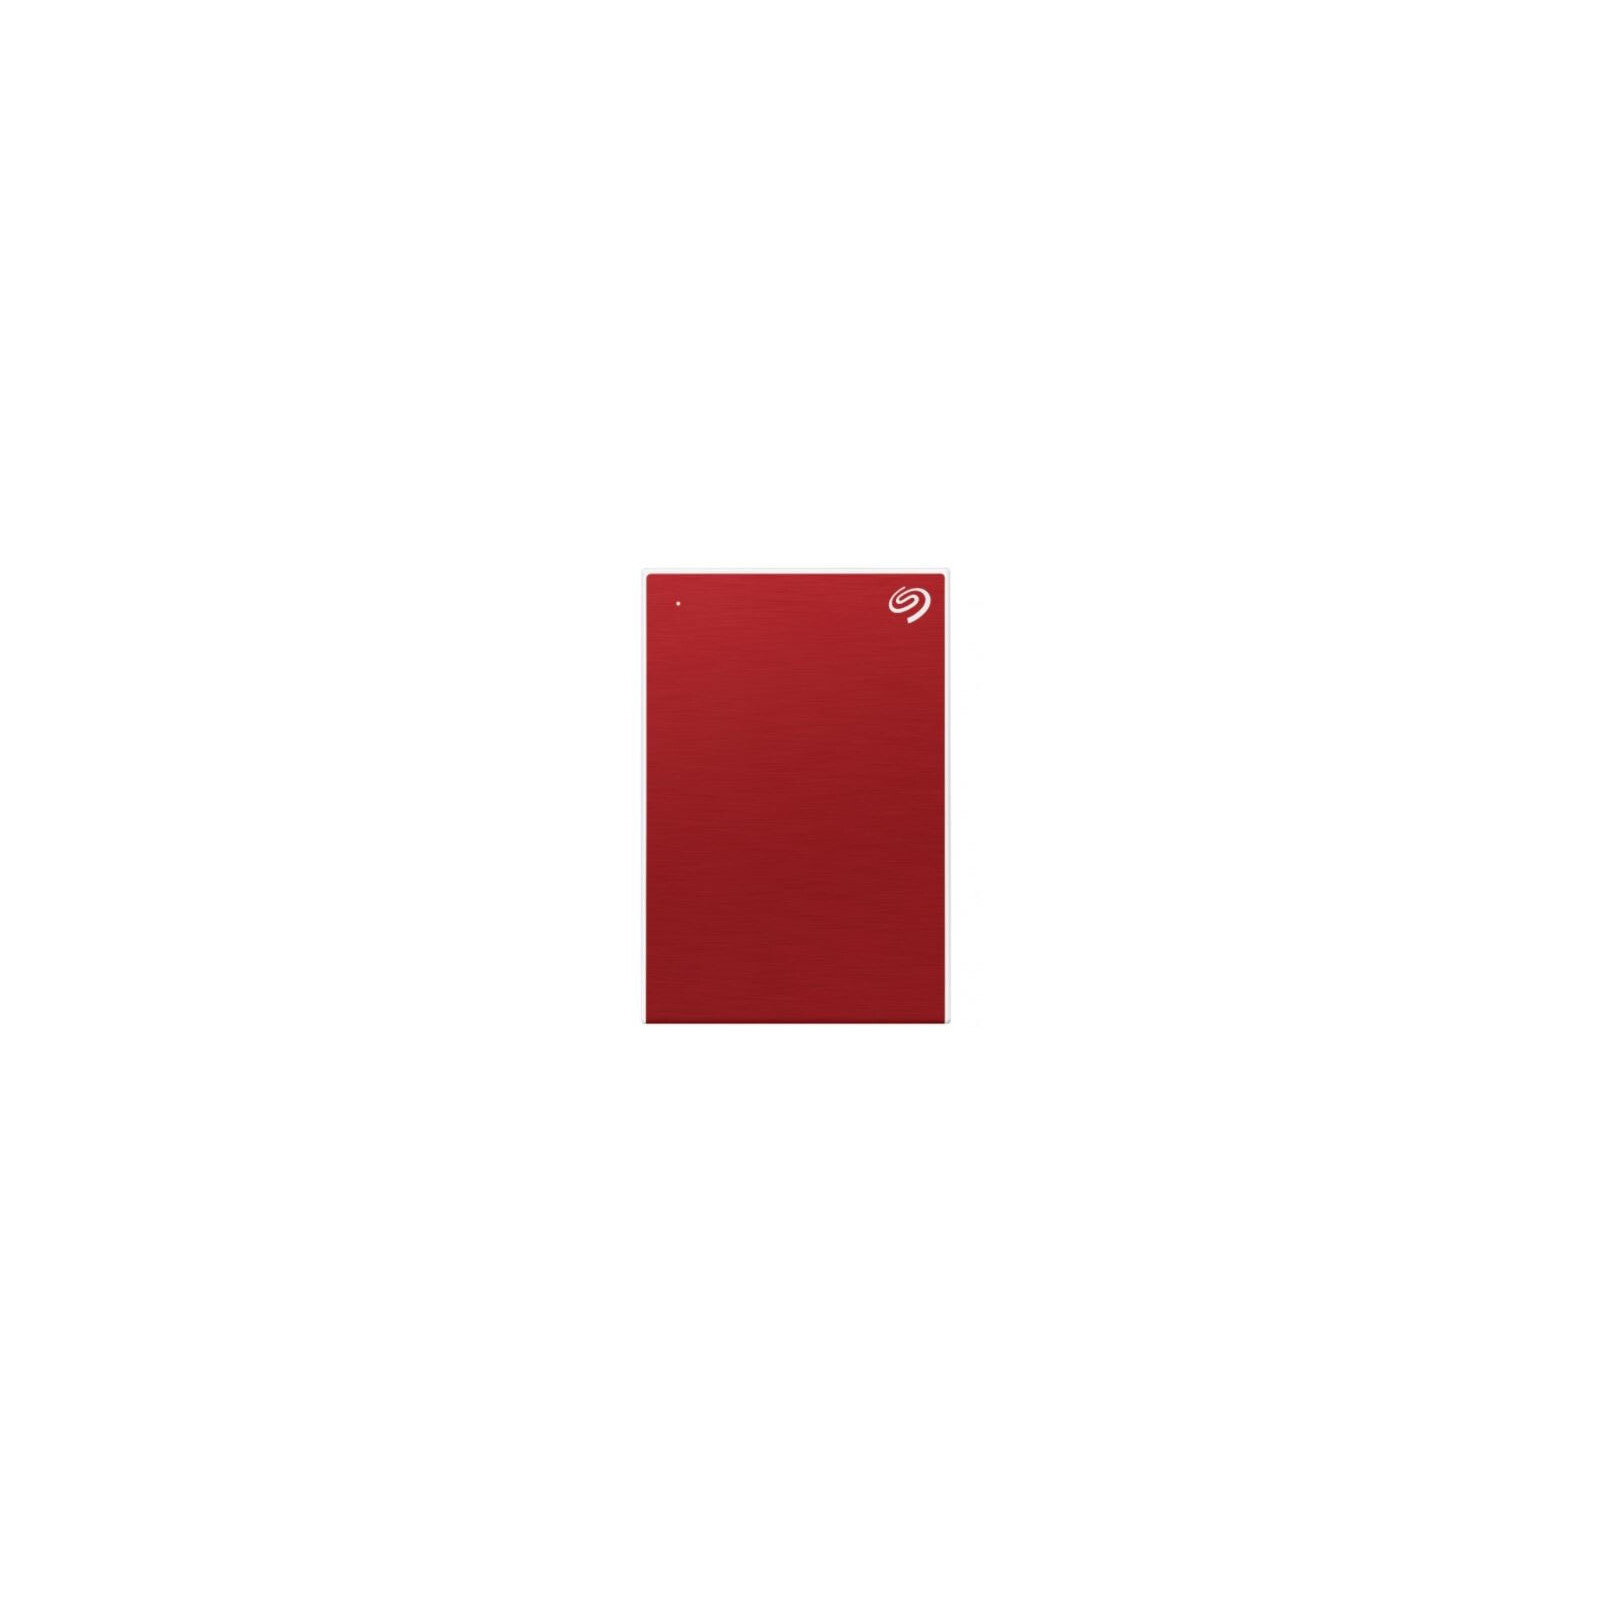 Seagate One Touch 1TB USB 3 red